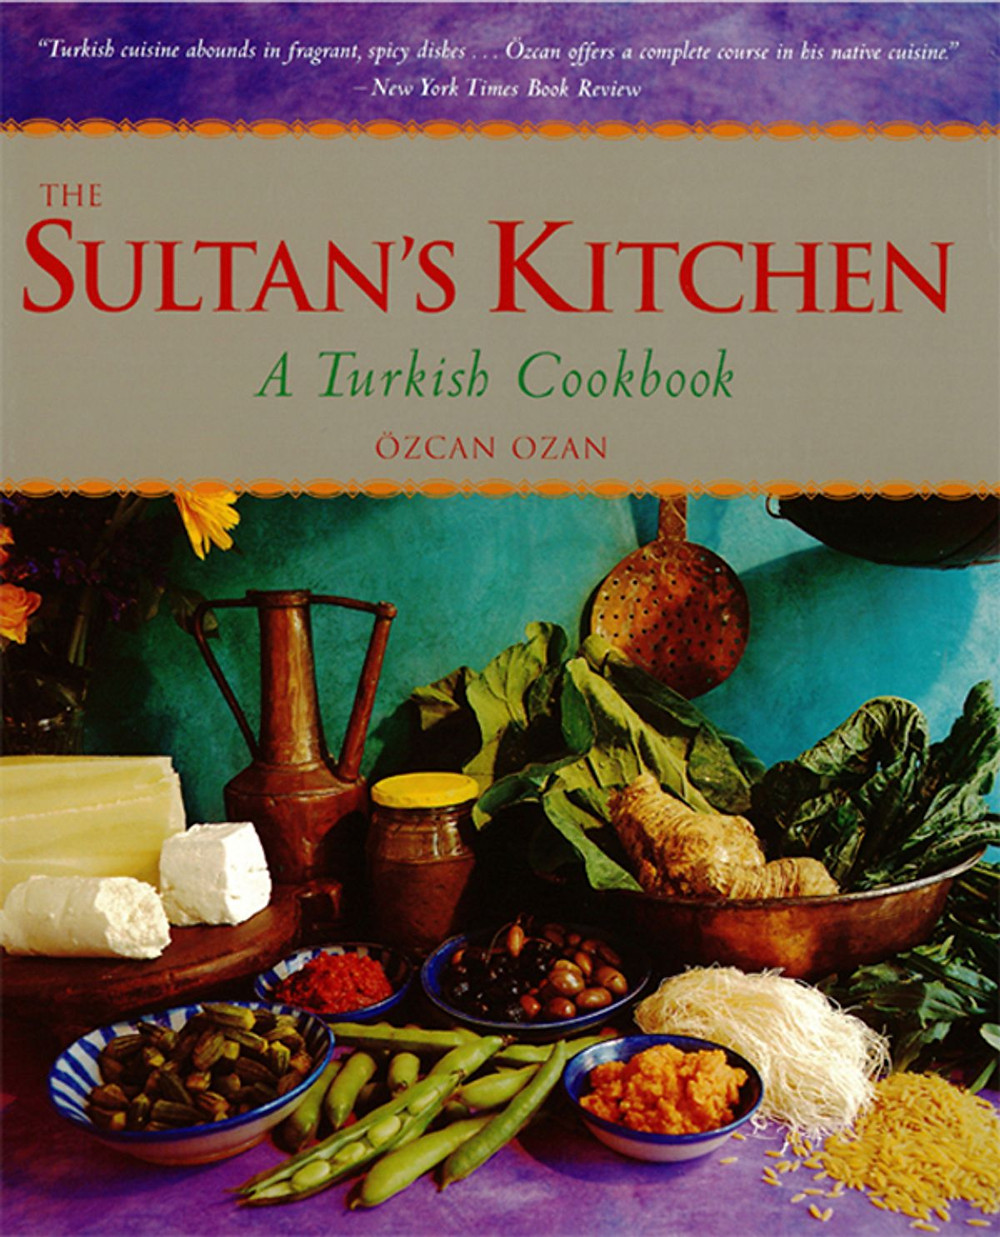 The Sultan's Kitchen Ozcan Ozan Mediterranean Meals